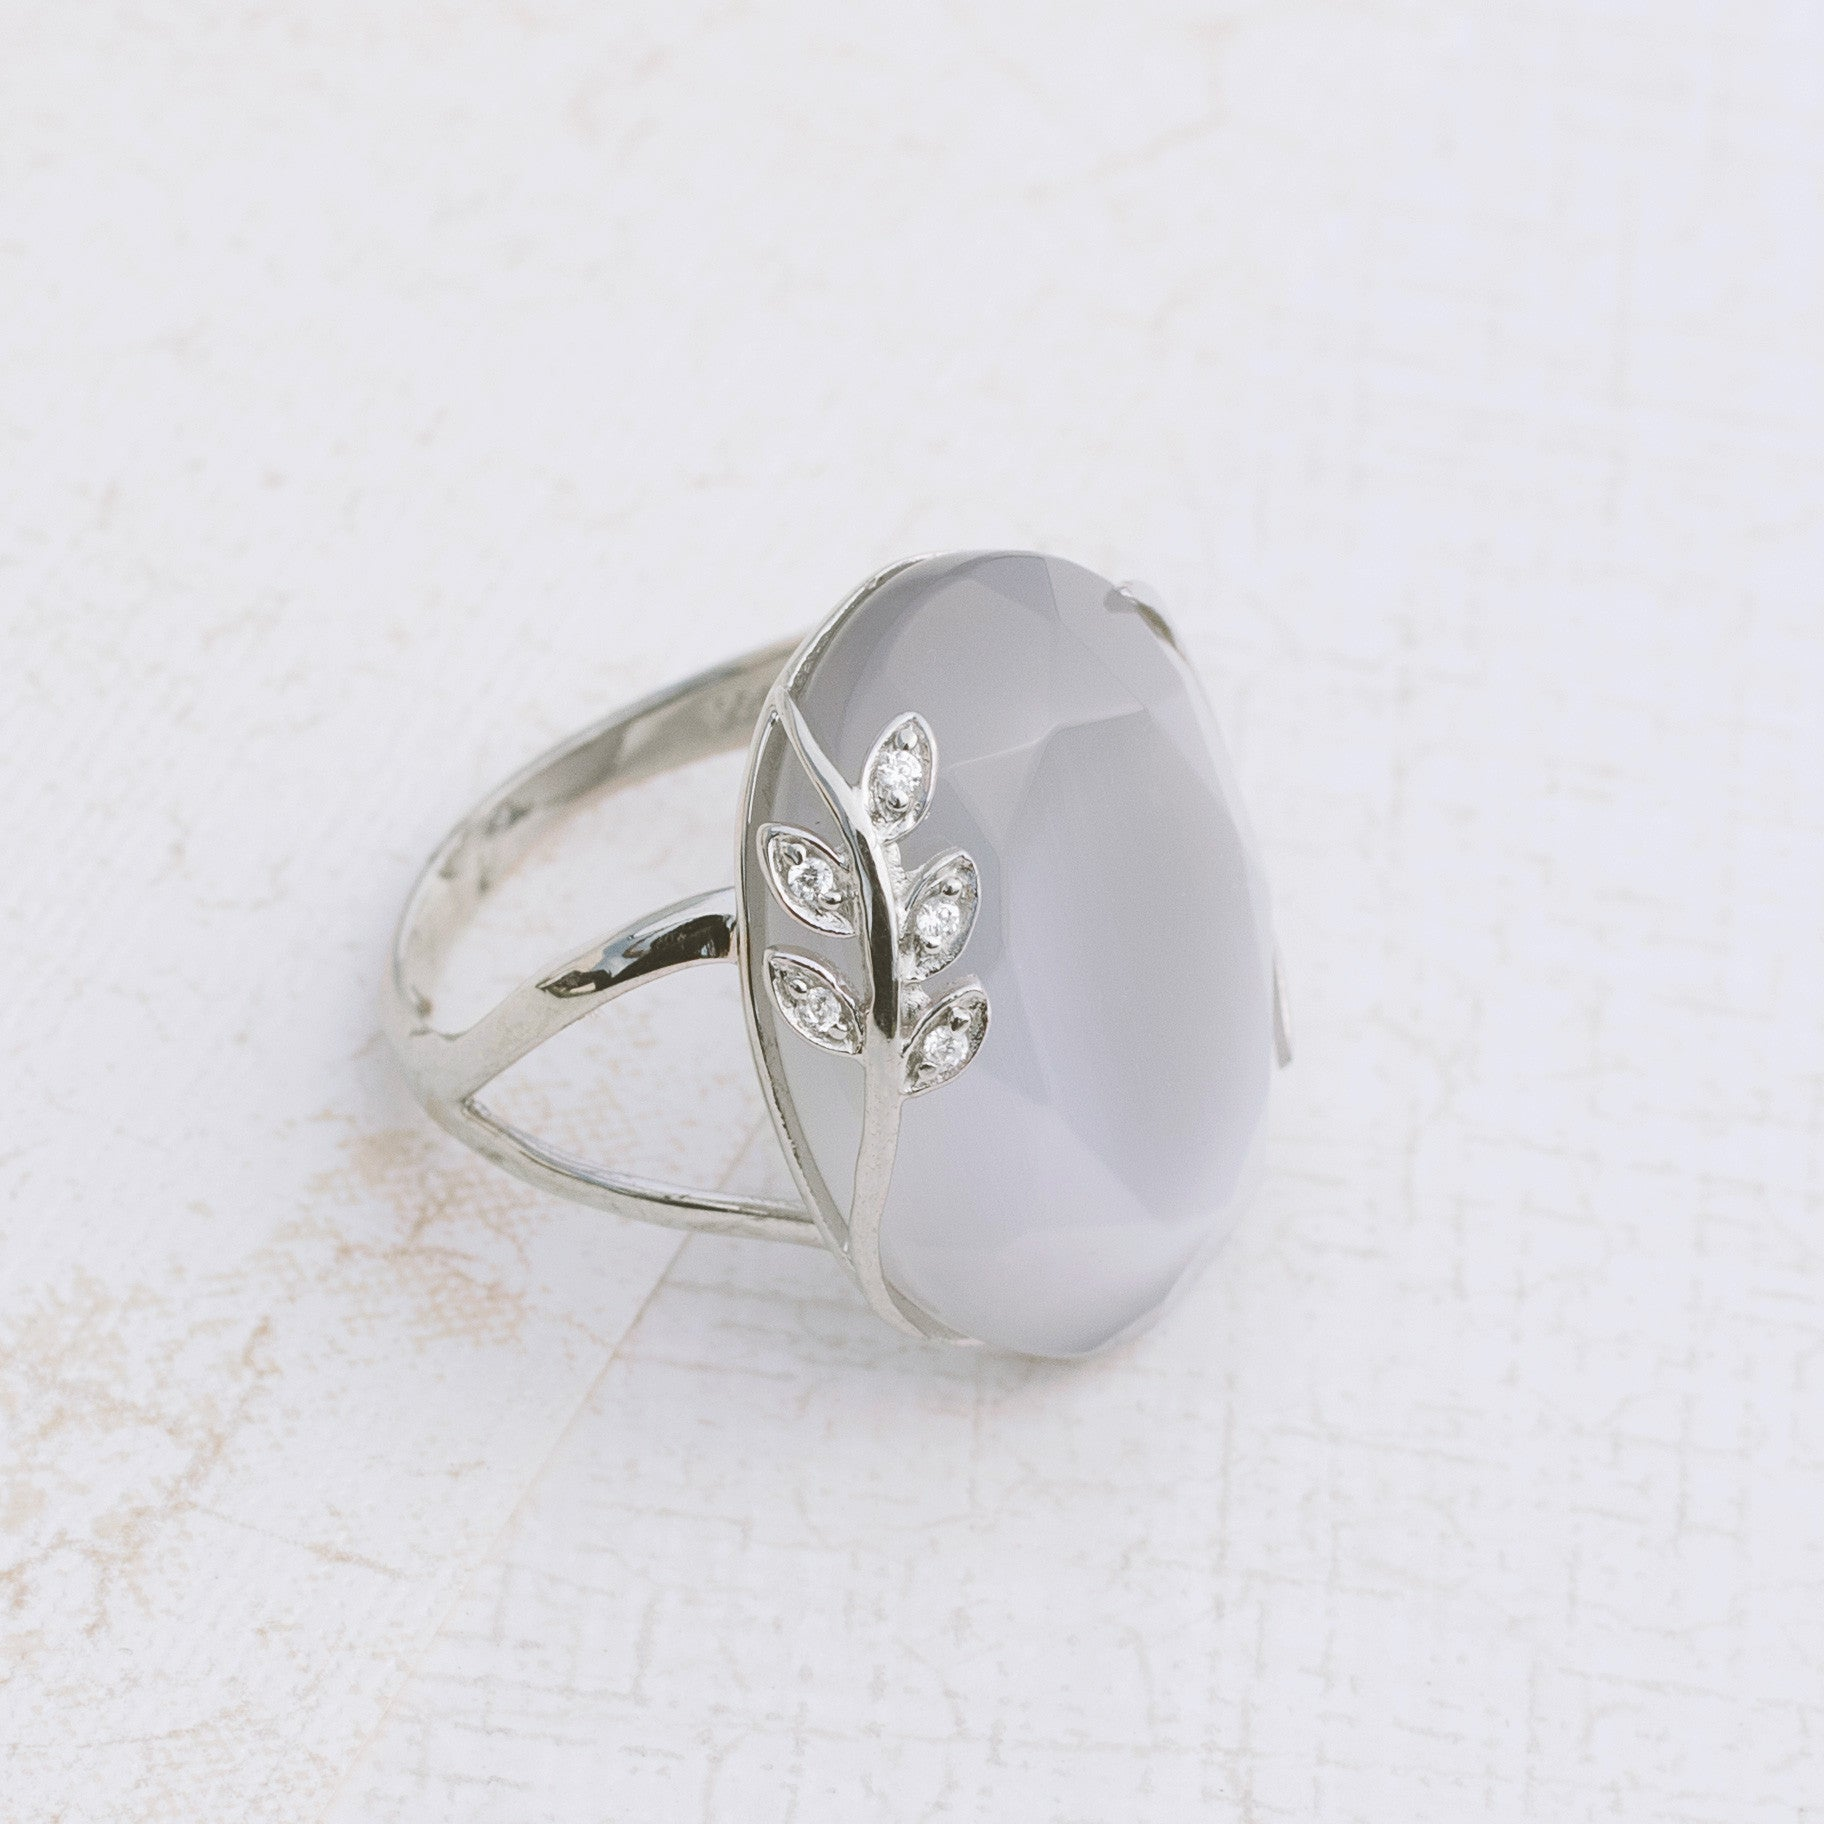 Smoke Signals Sterling Silver Ring